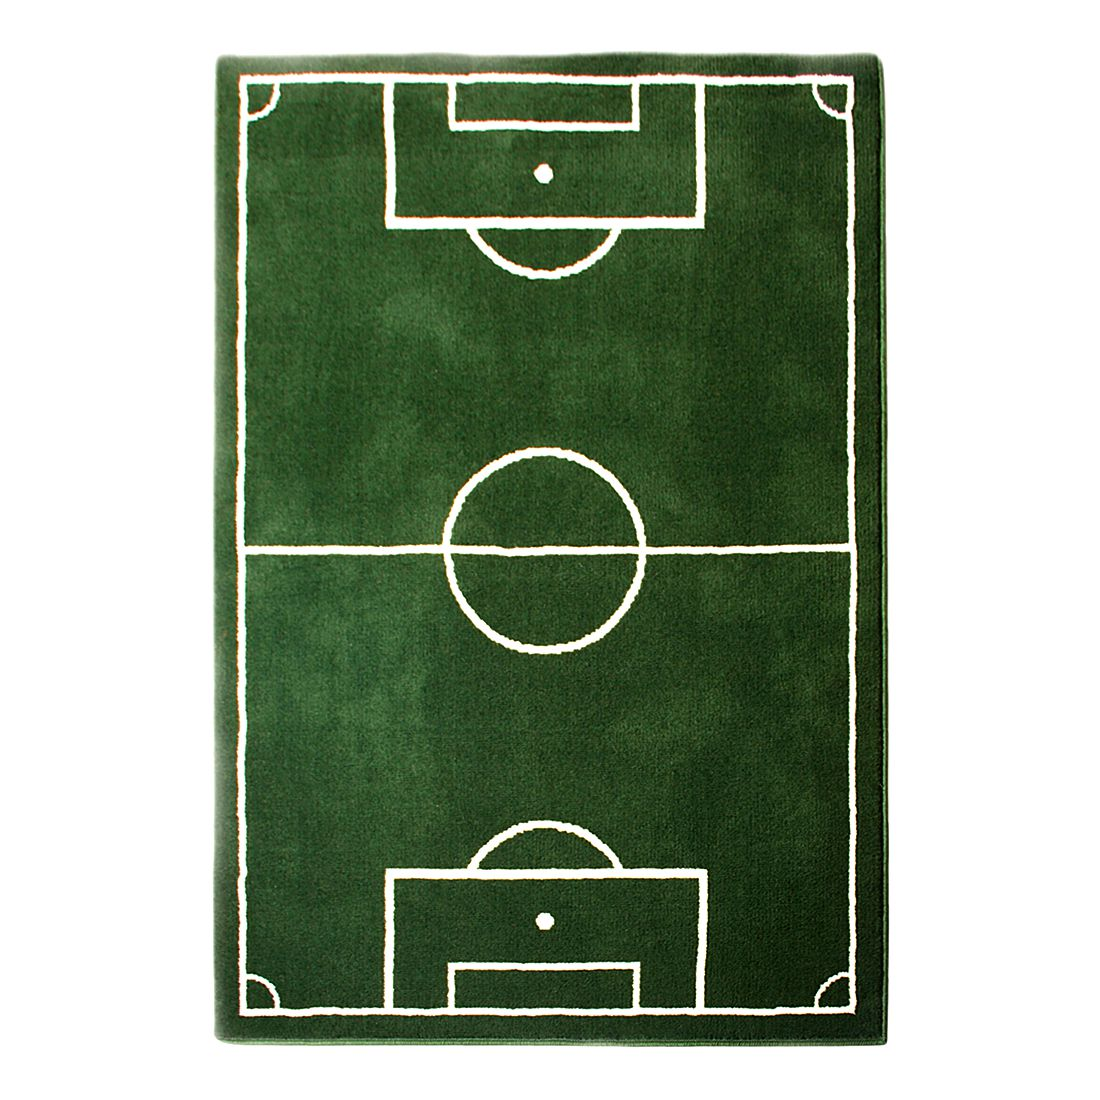 Home 24 - Tapis football - 80 x 150 cm, hanse home collection